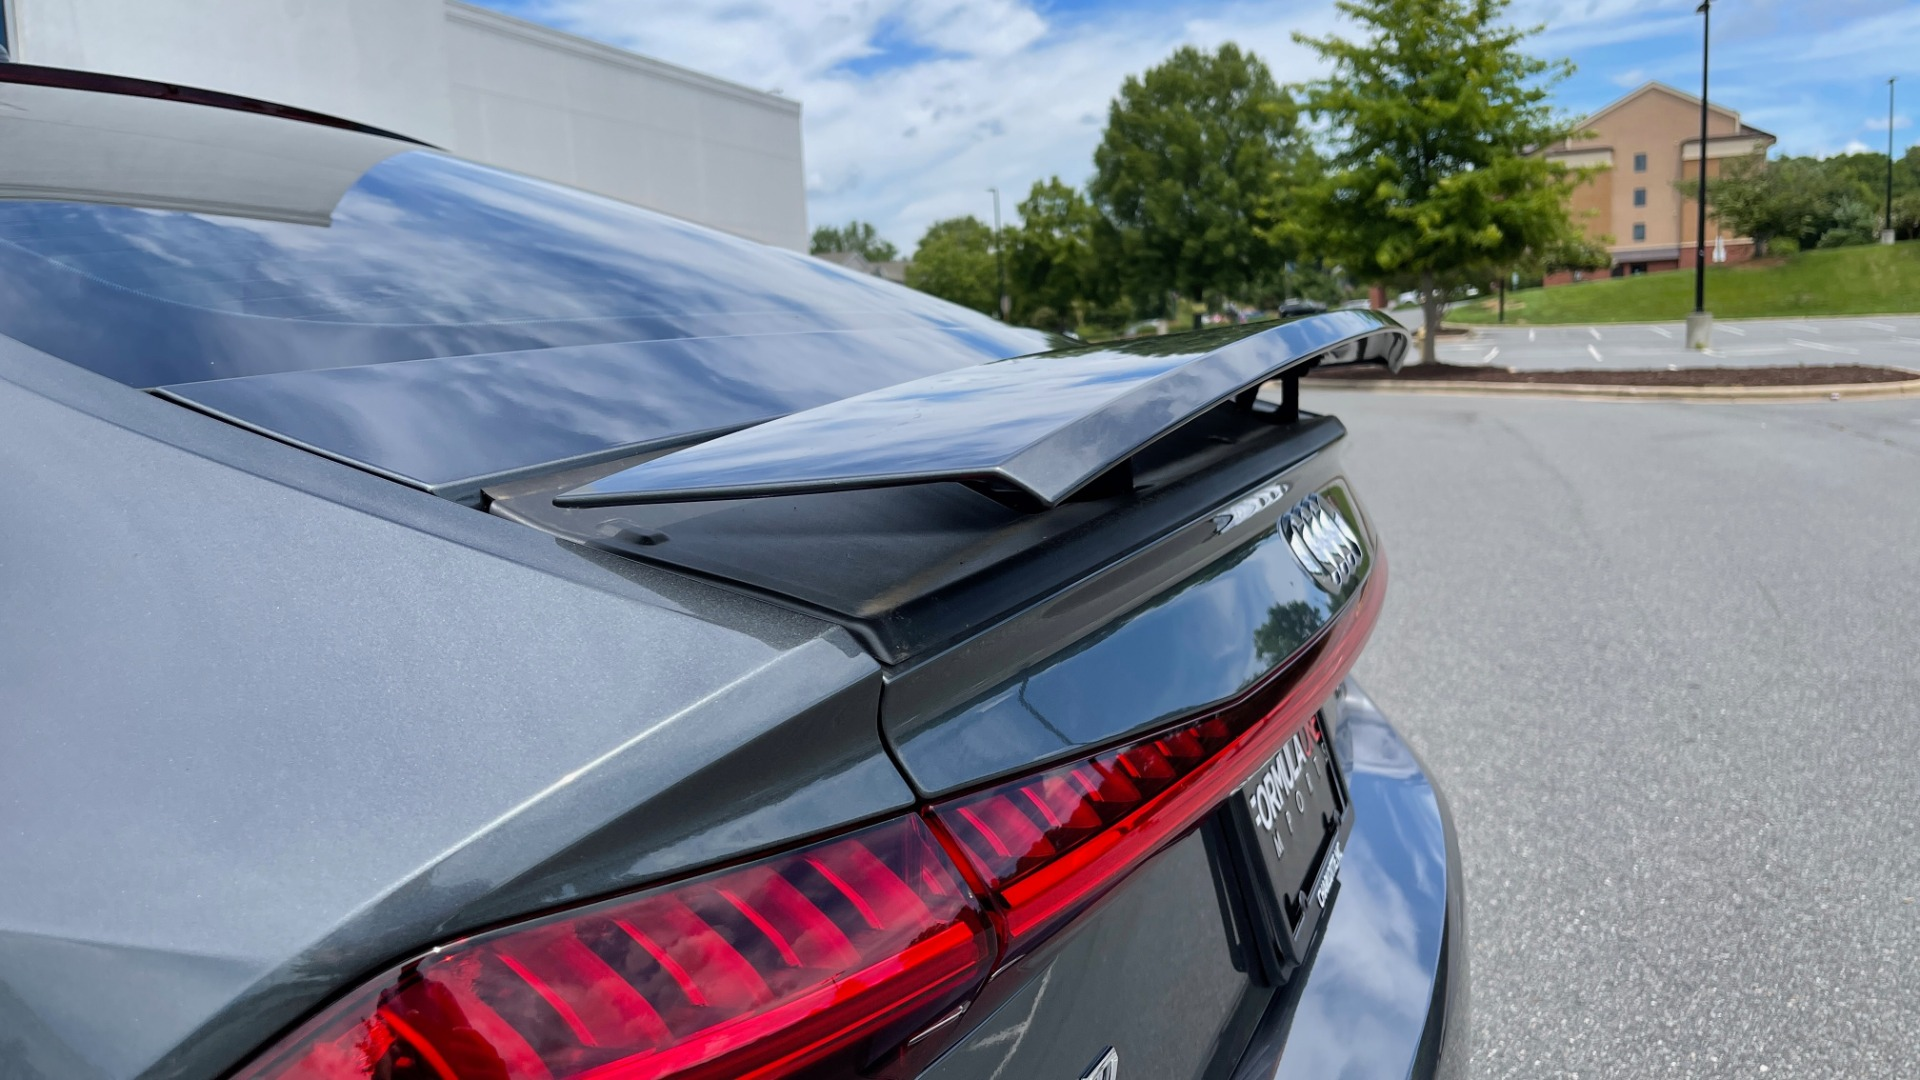 Used 2019 Audi A7 PRESTIGE 55 TFSI 3.0T / NAV / B&O SND / SUNROOF / S-LINE / 21IN WHLS / REAR for sale $66,995 at Formula Imports in Charlotte NC 28227 27